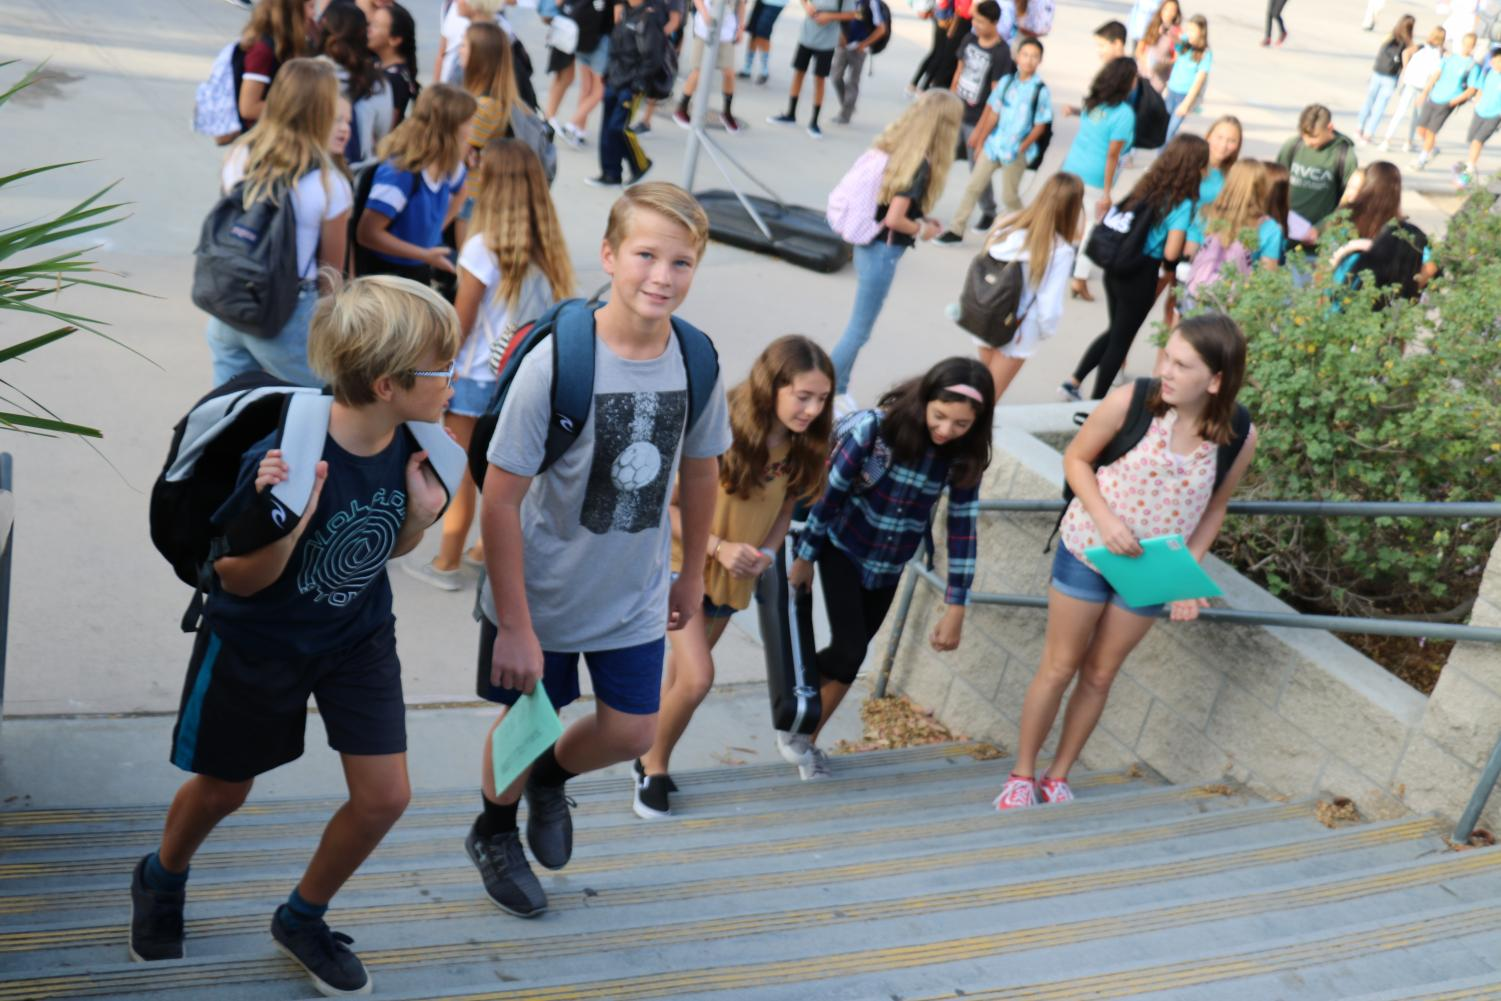 Students head to class as the first bell of the school year begins to ring.